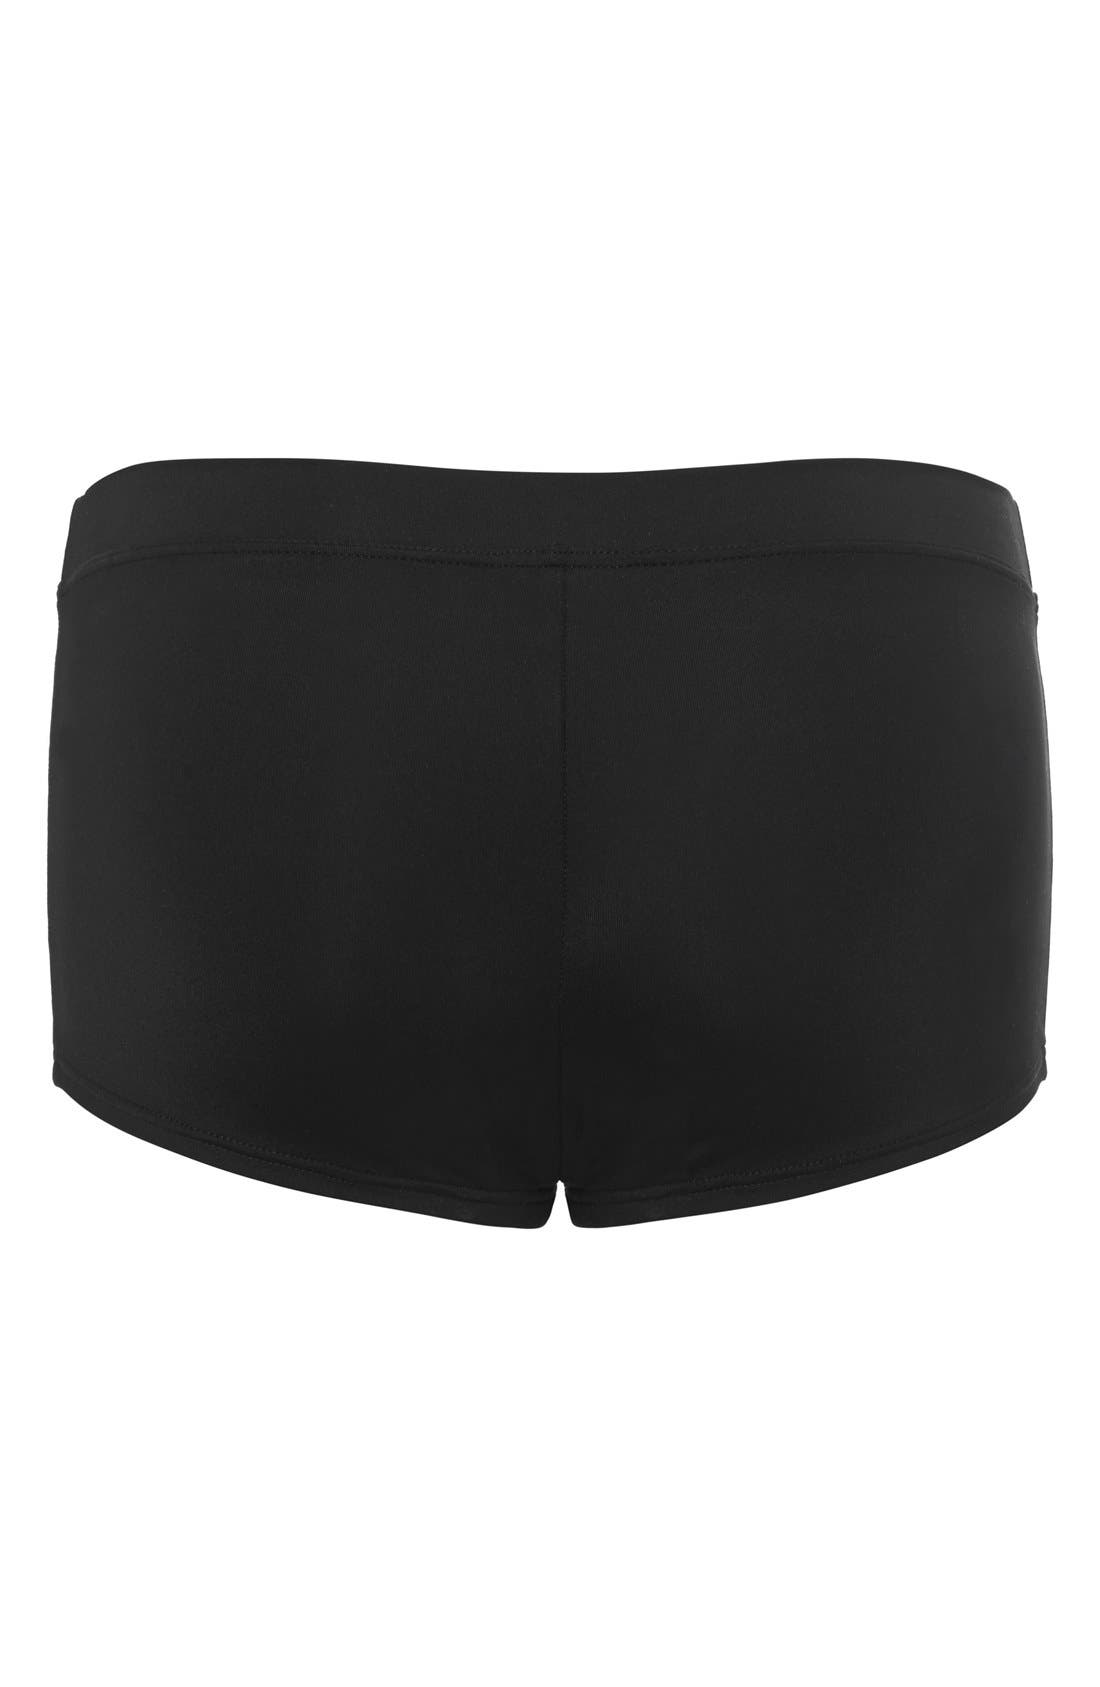 Alternate Image 2  - Noppies 'Saint Tropez' Maternity Boyshort Swim Bottoms